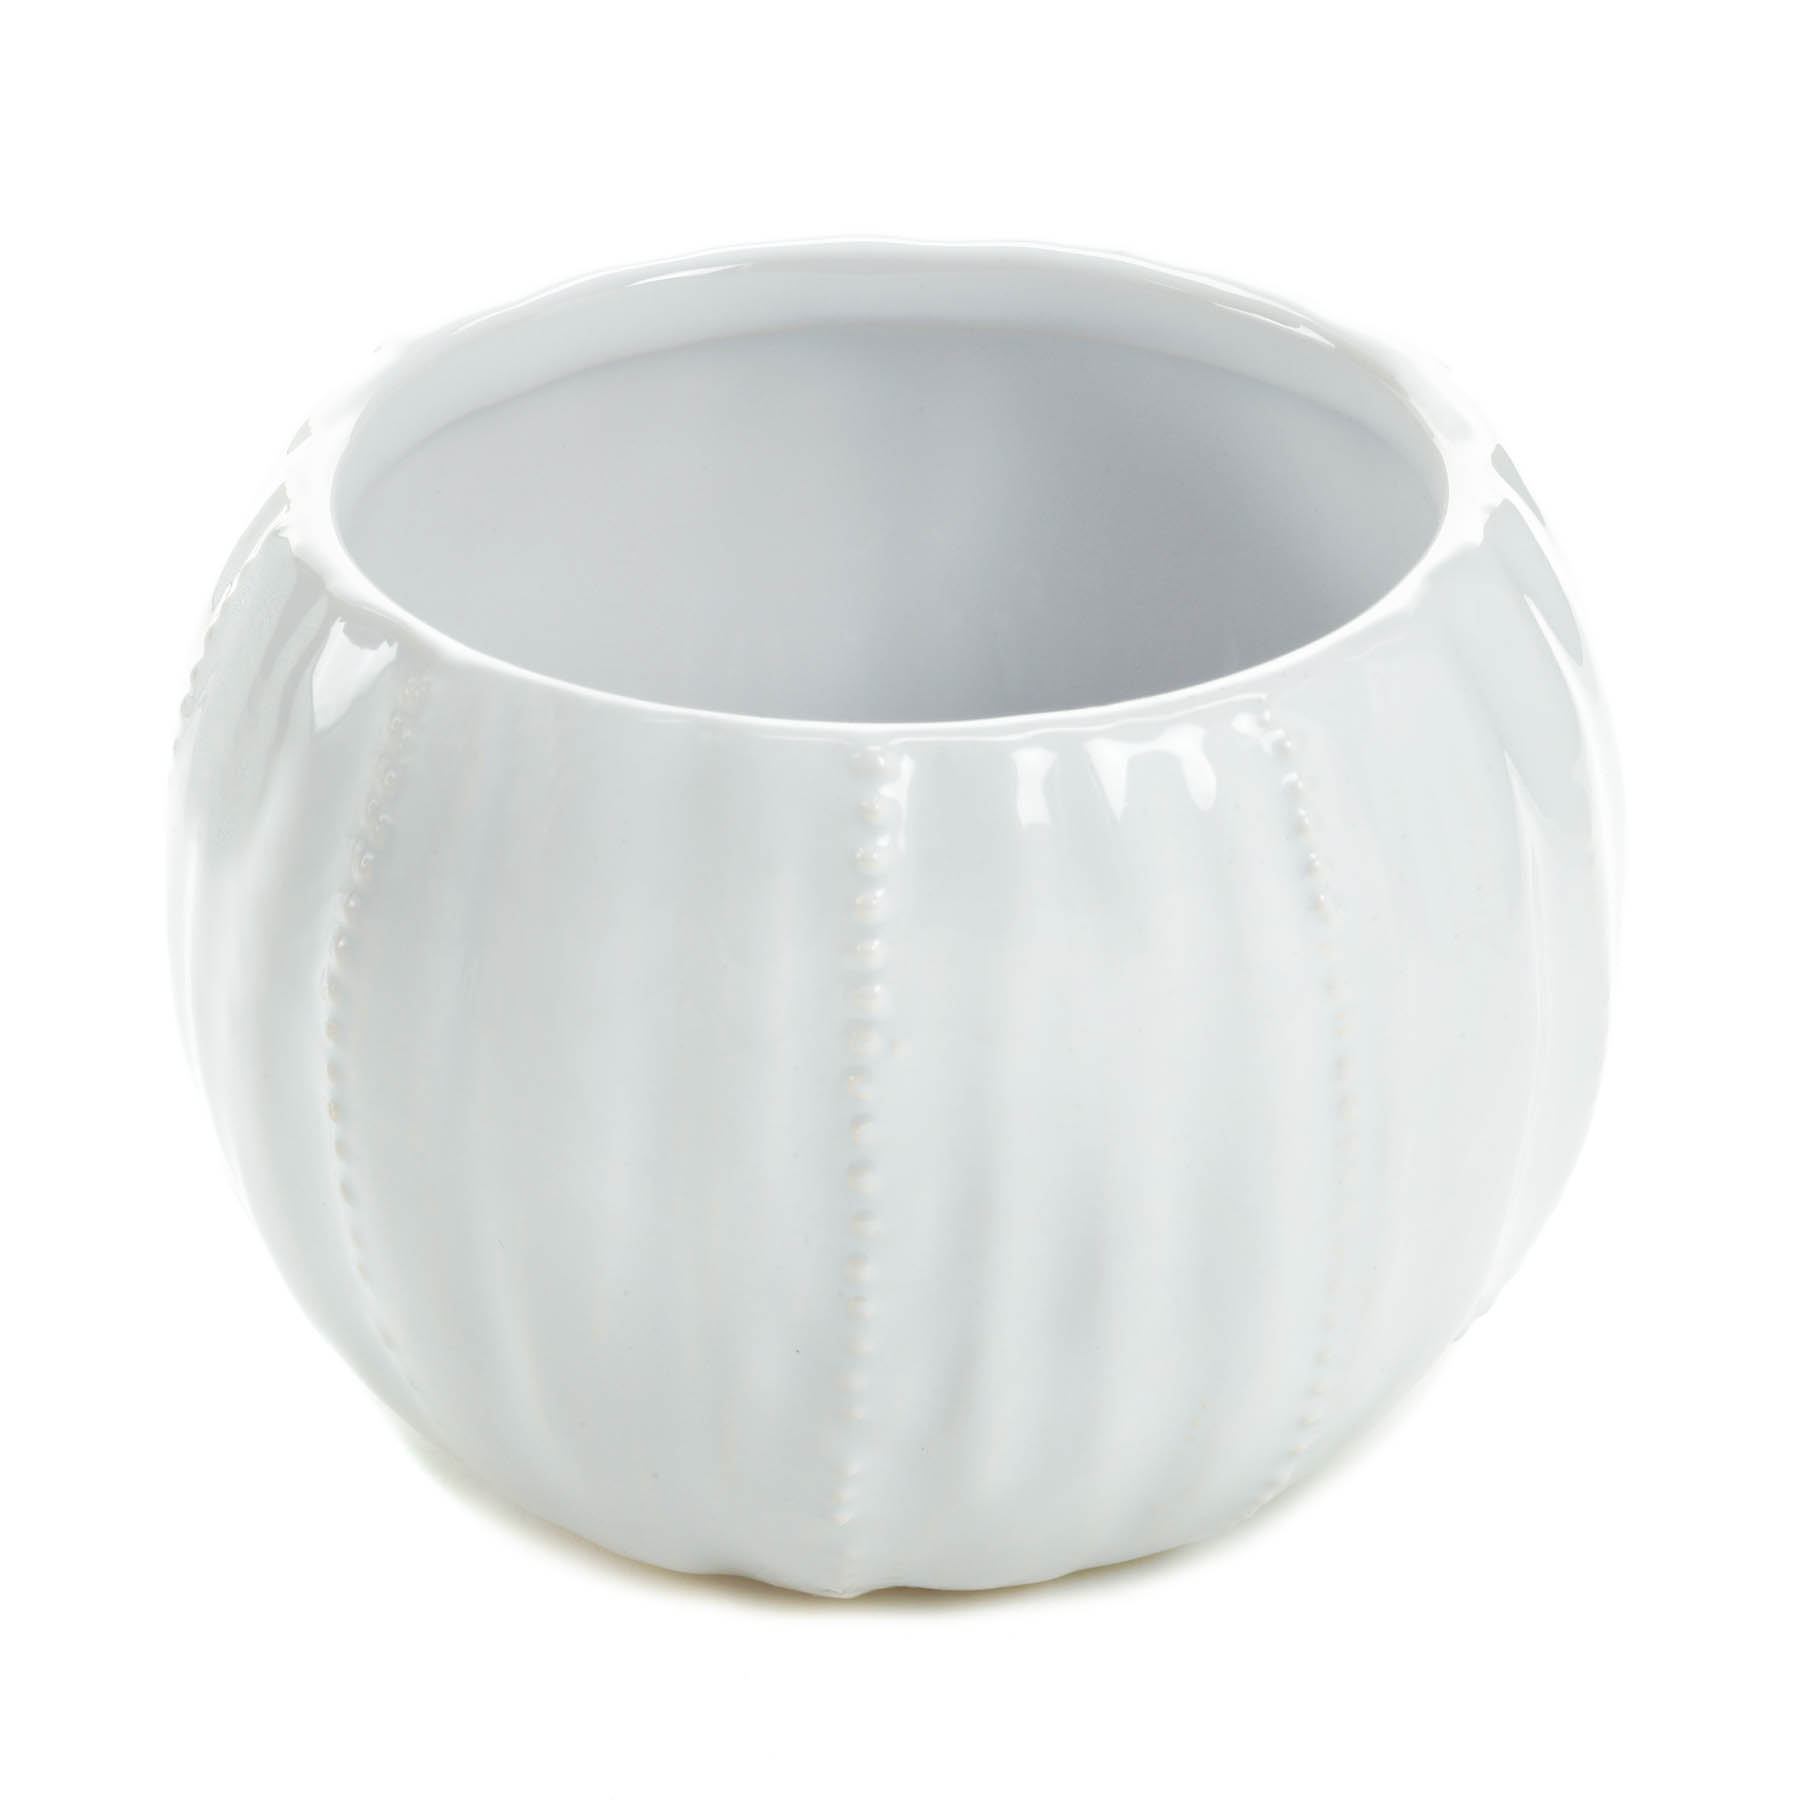 votive candle holder pure white ceramic orb candleholder table shelf accent stock ture outside patio narrow bar concrete look dining height set diy coffee teal bedroom accessories